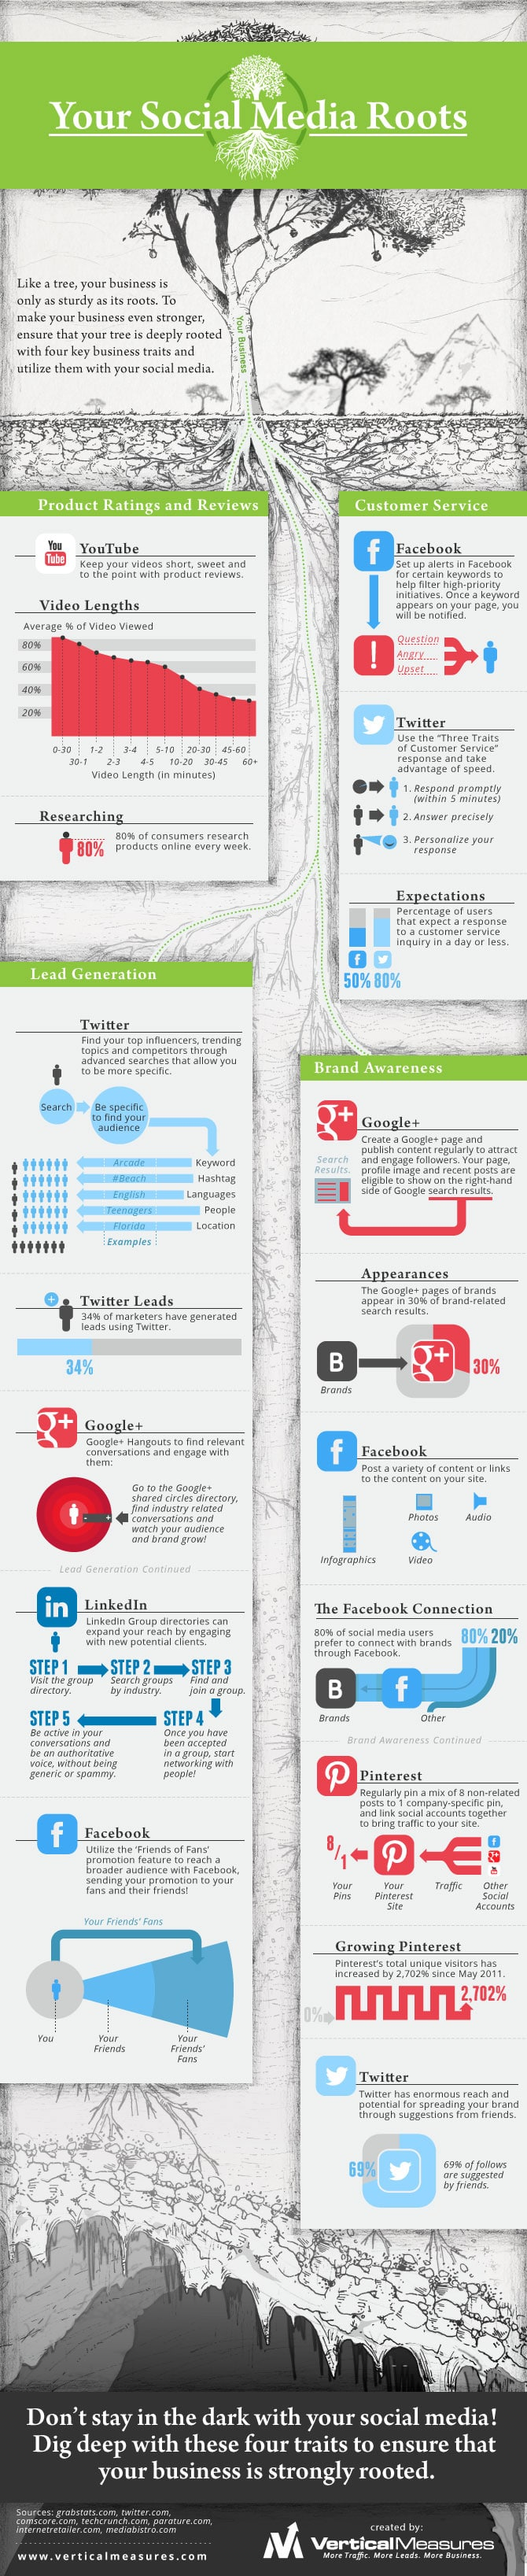 Business Social Media: How To Setup A Solid Foundation [Infographic]